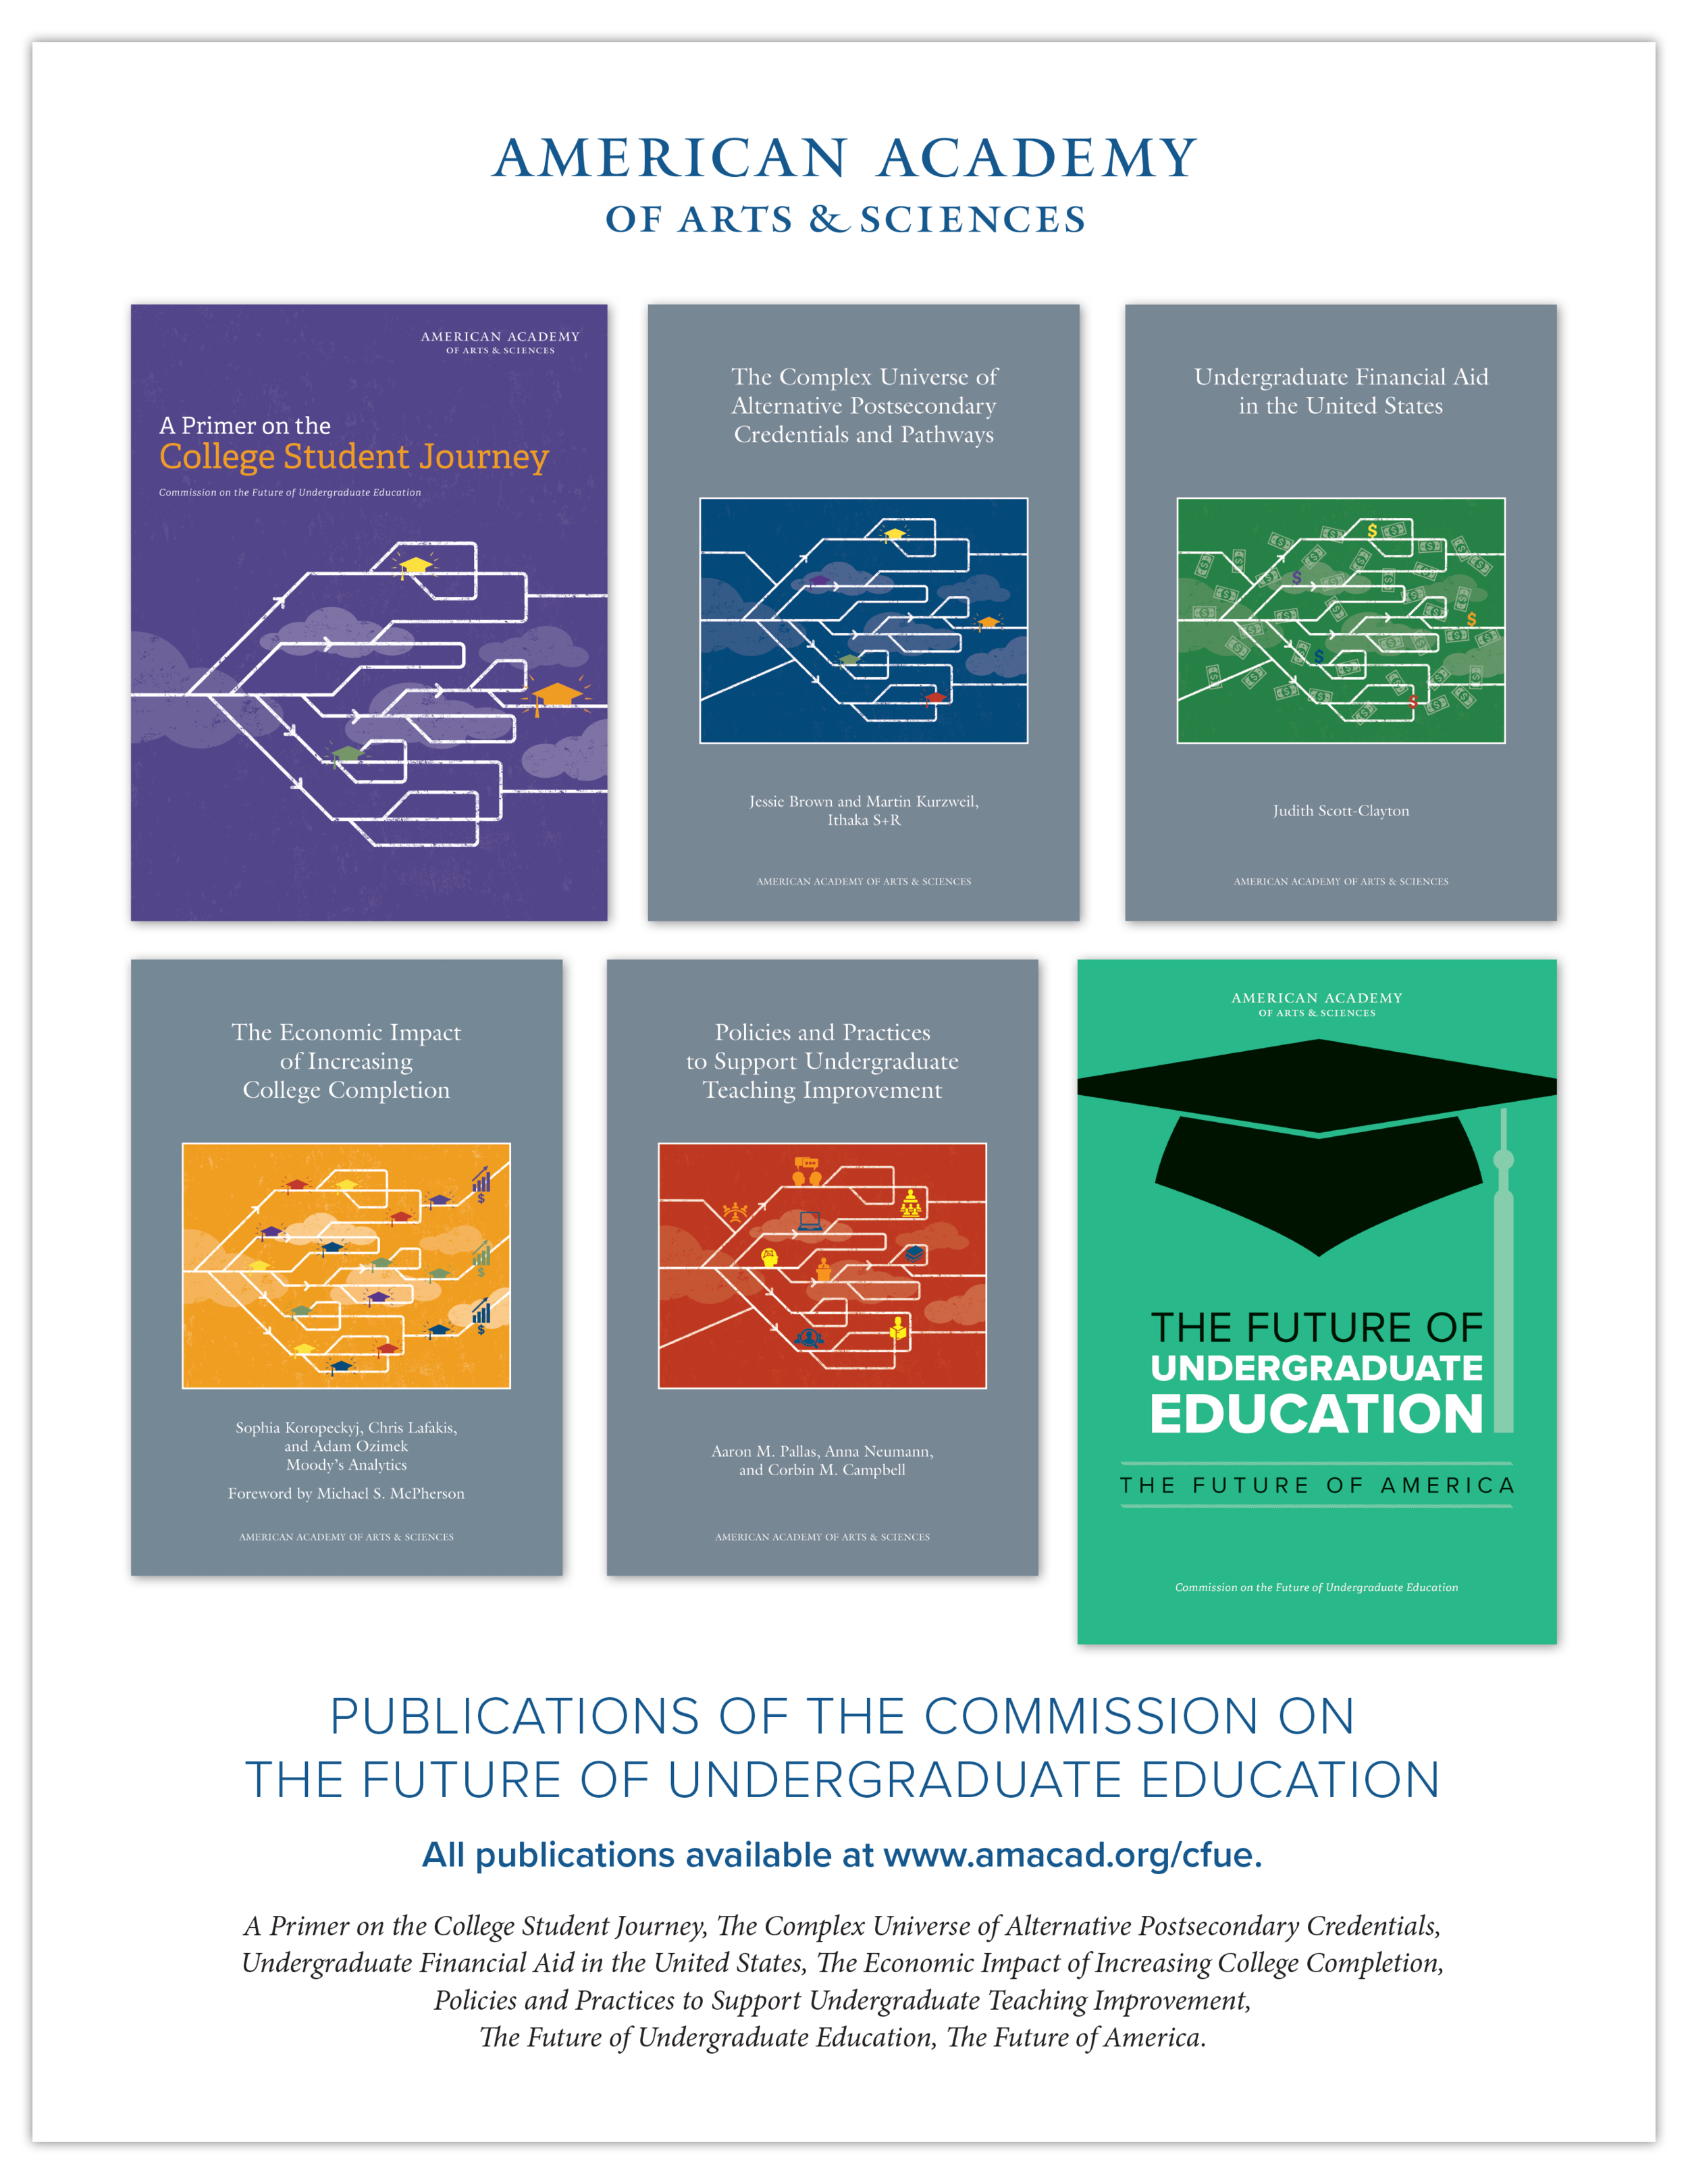 Ad for the Commission on the Future of Undergraduate Education